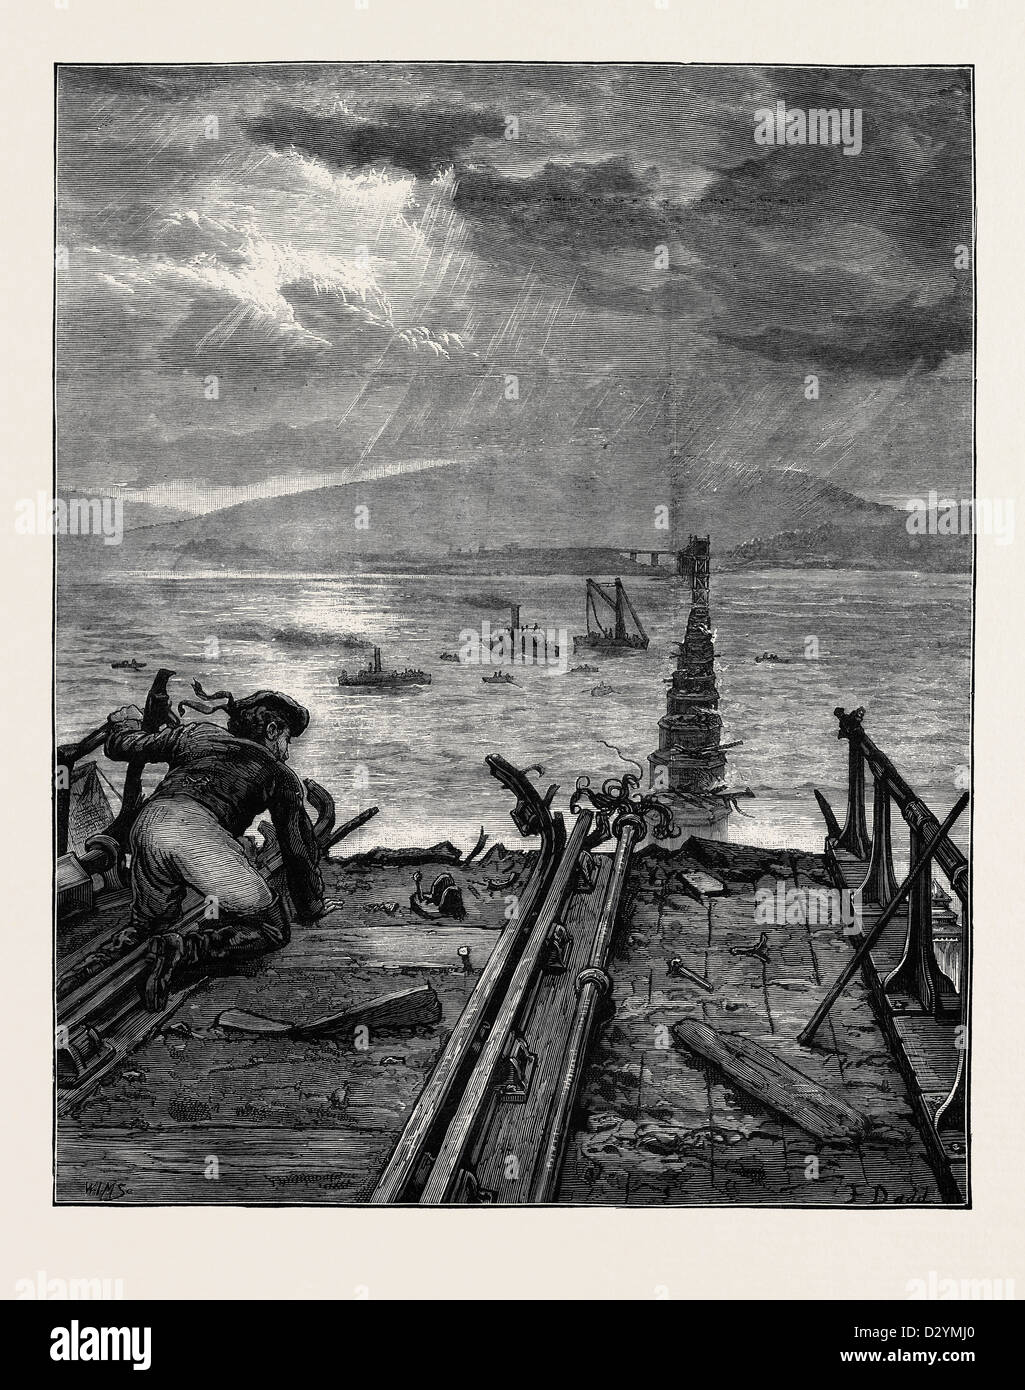 THE TAY BRIDGE DISASTER: VIEW OF THE BROKEN BRIDGE FROM THE NORTH END 1880 - Stock Image